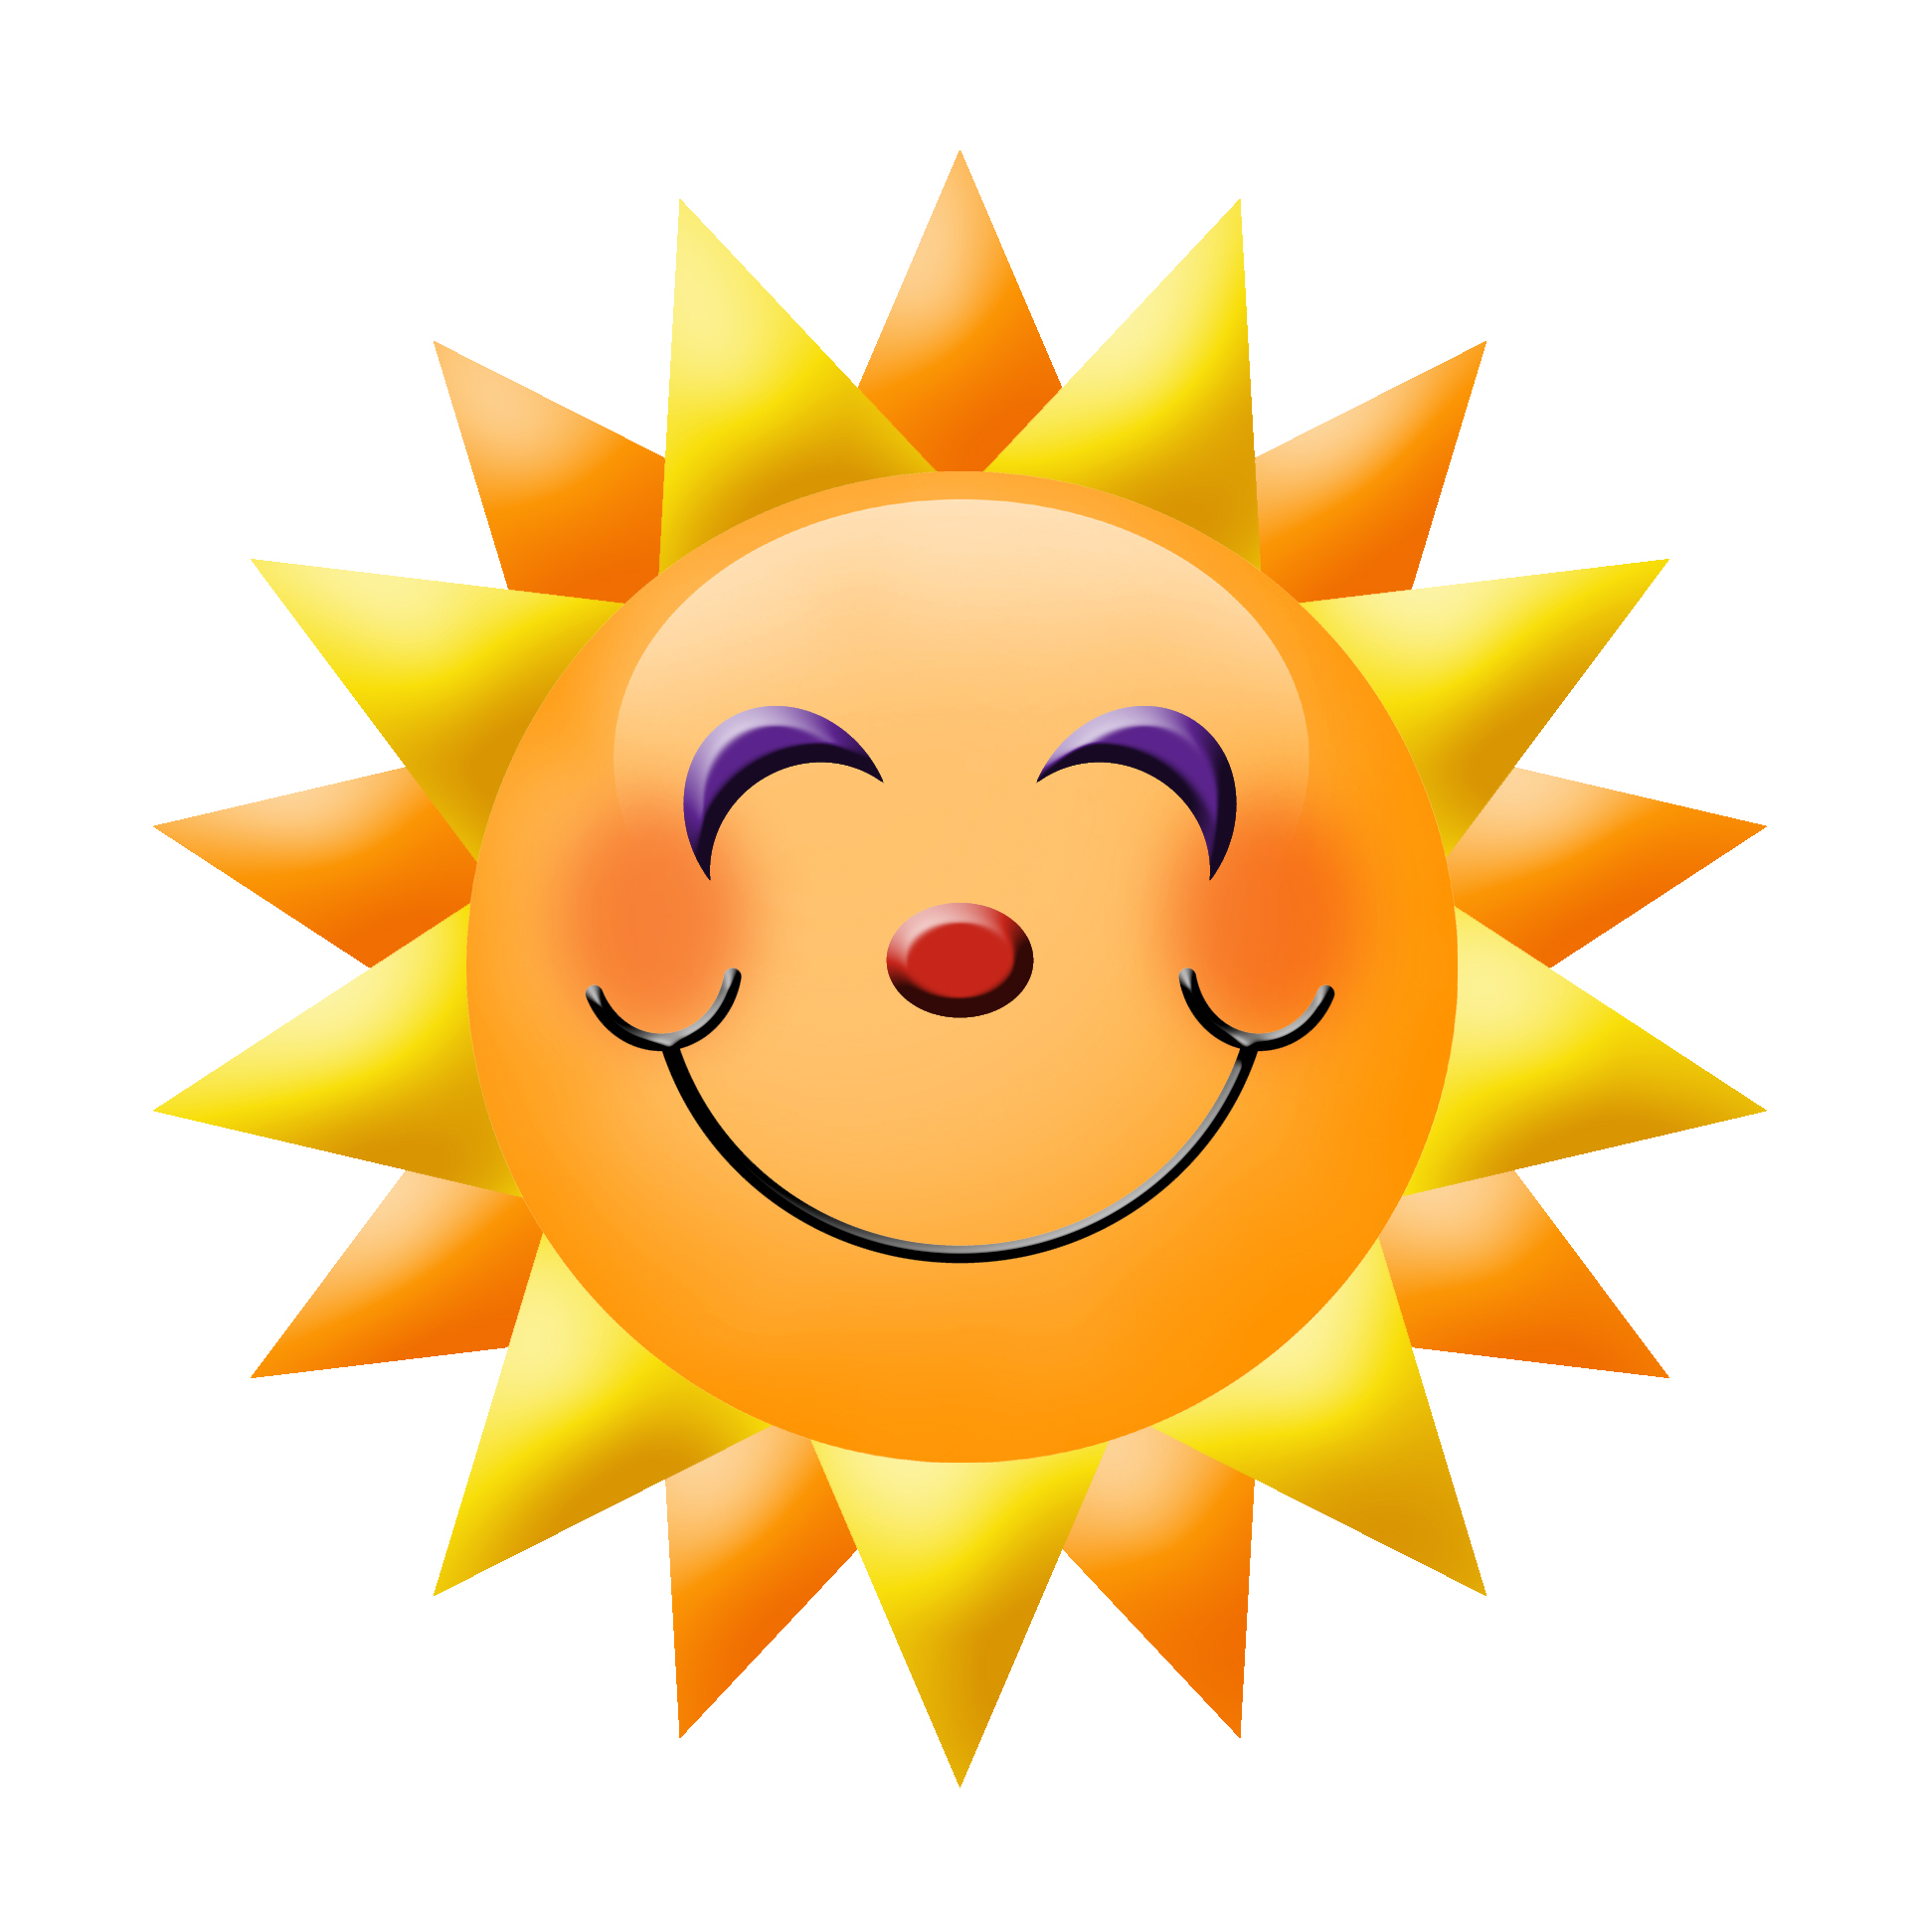 Sun with smiley face clipart banner Sun With A Smiley Face - Free Clipart banner